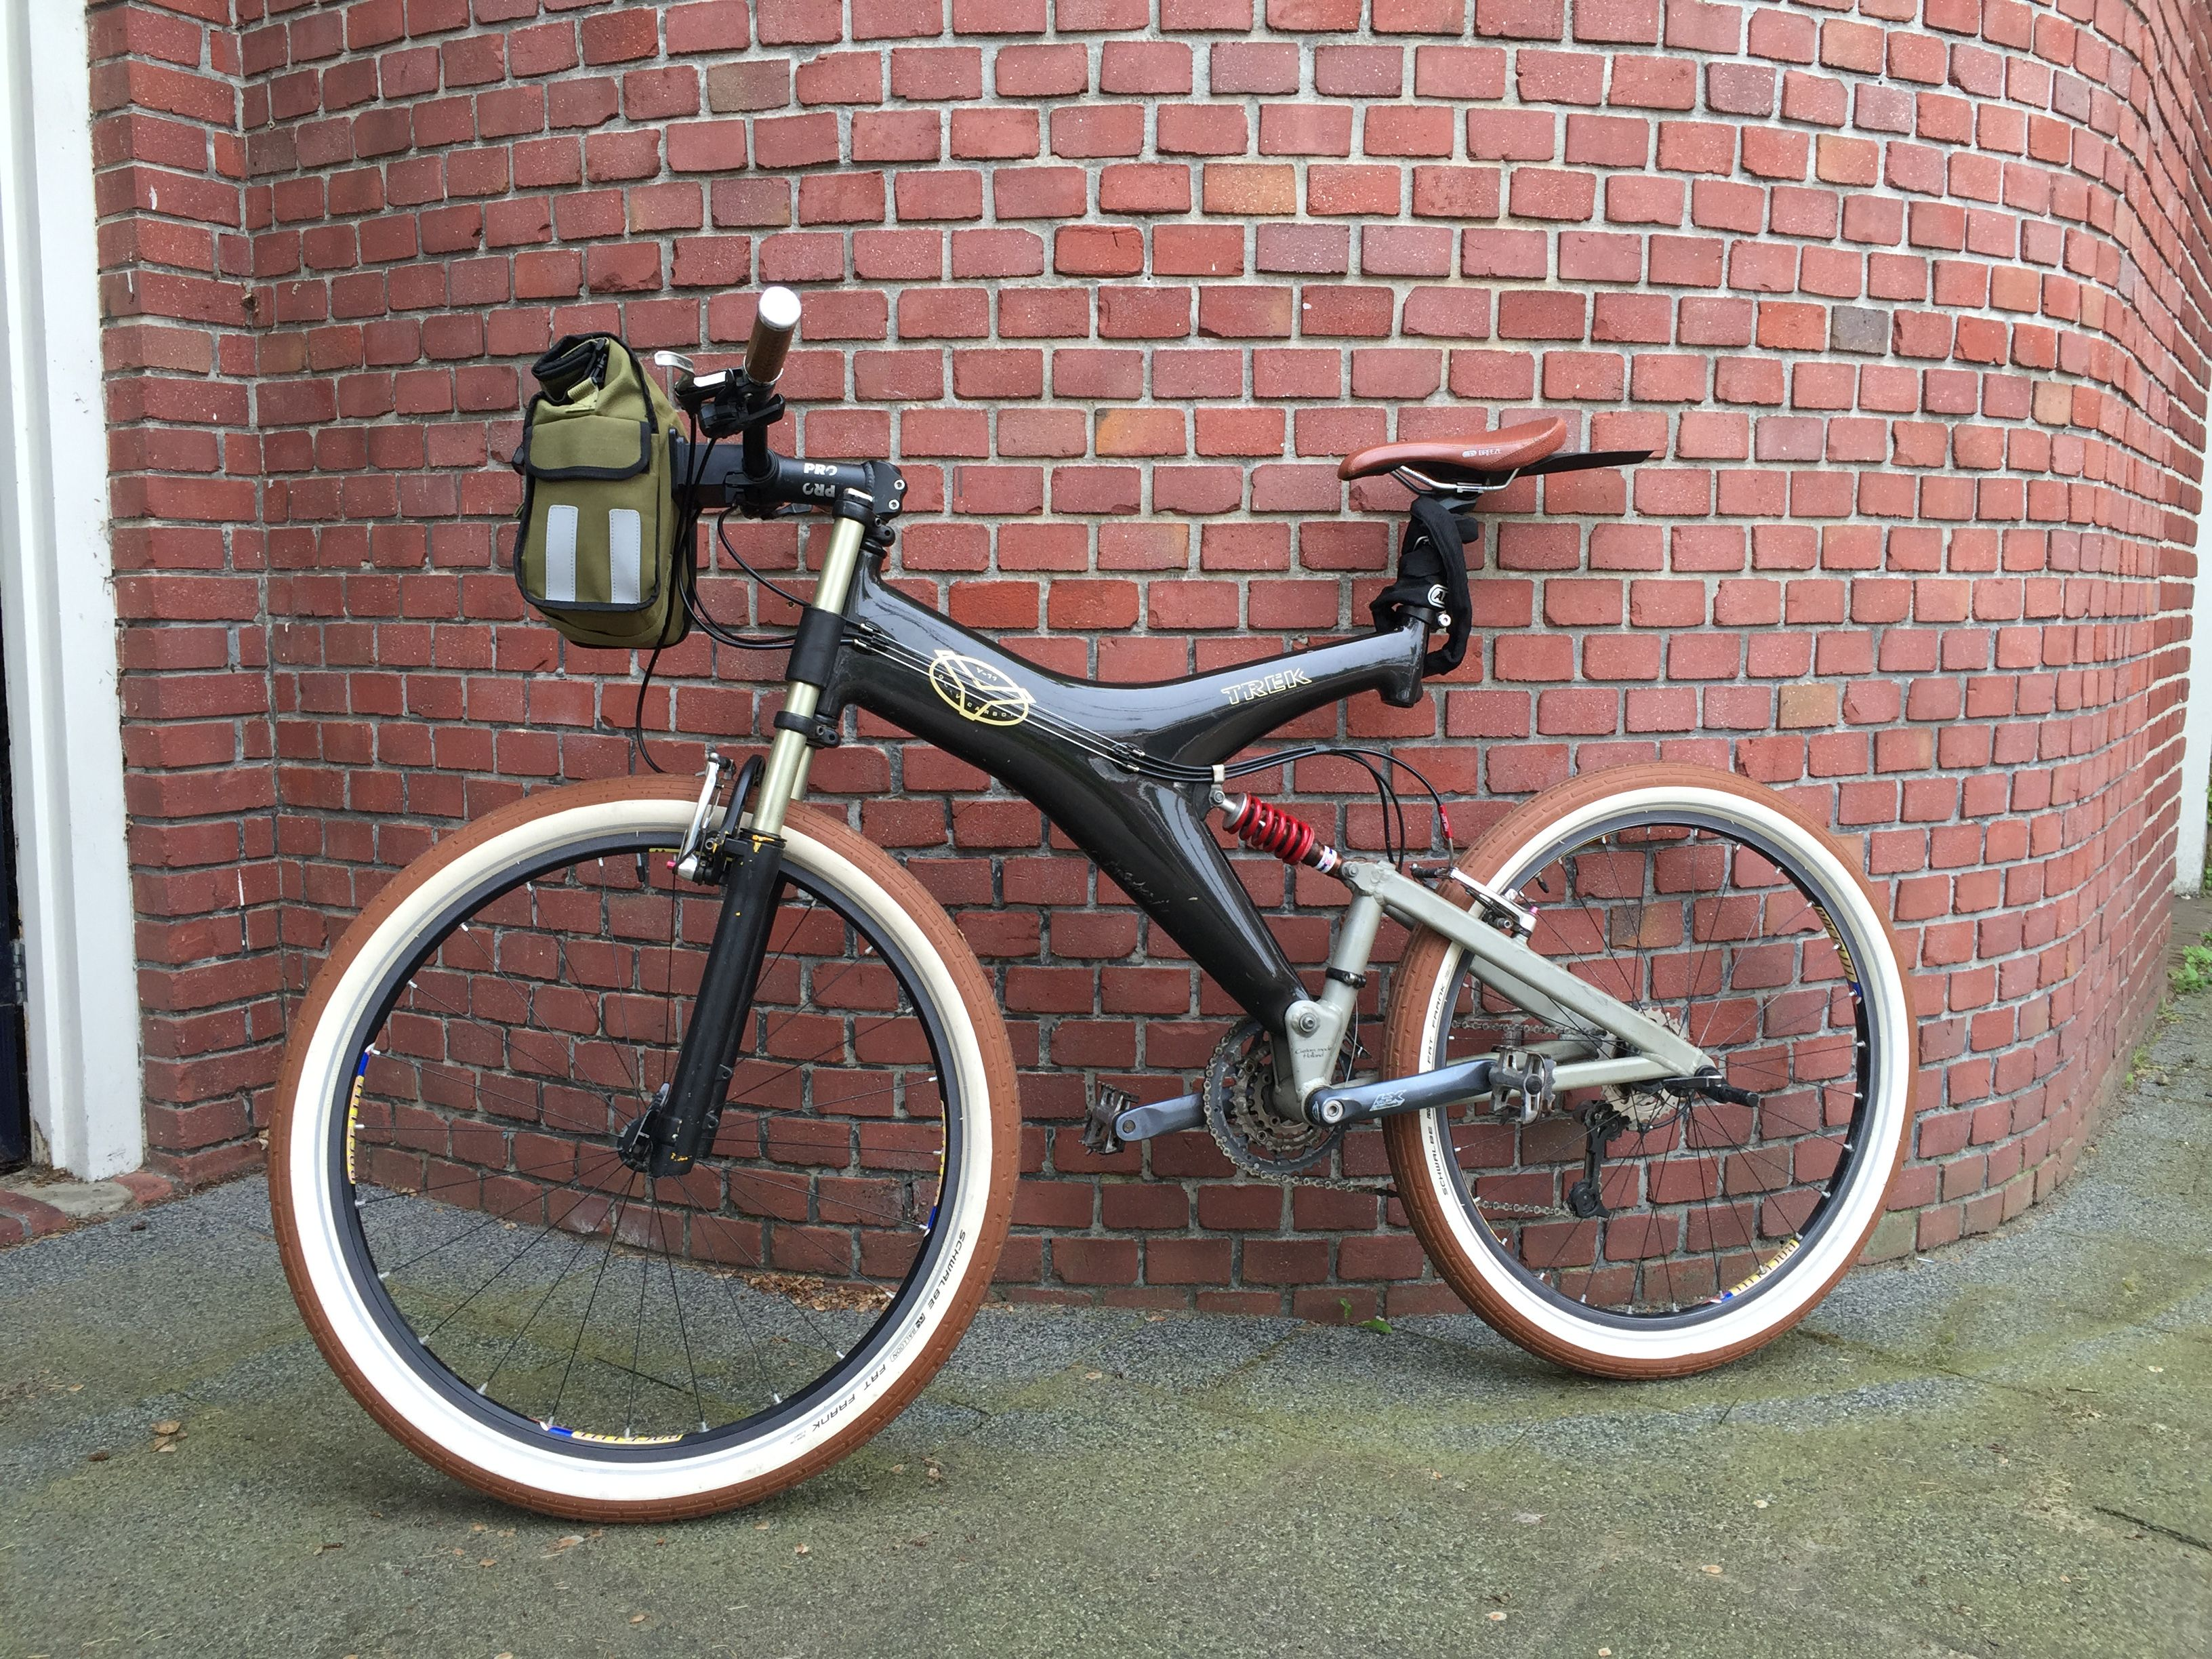 Pin by Ricky Lam on mtb | Pinterest | Full suspension, Bicycling and MTB